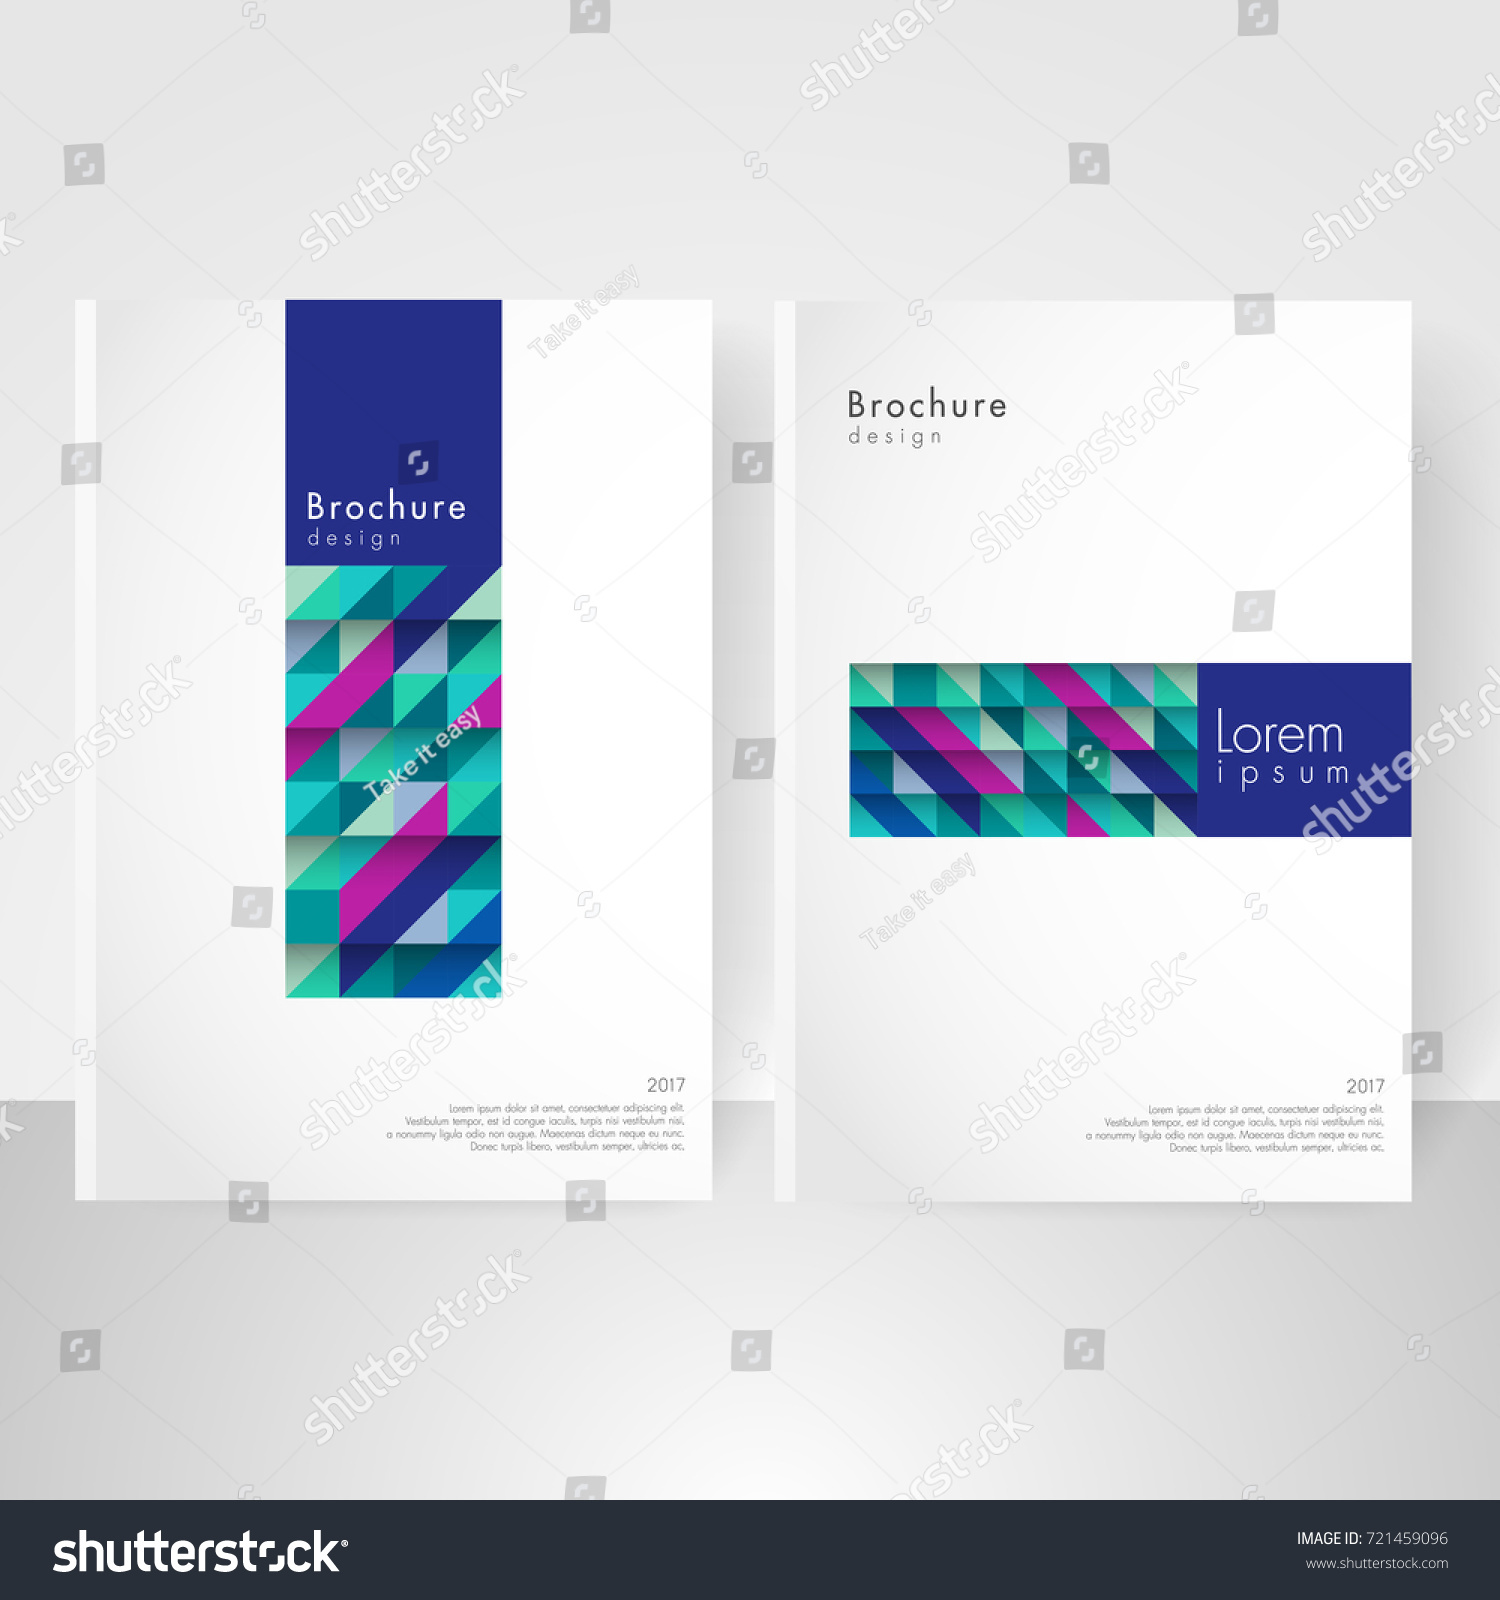 Business Brochure Cover Template Cover Design Stock Vector 721459096 ...